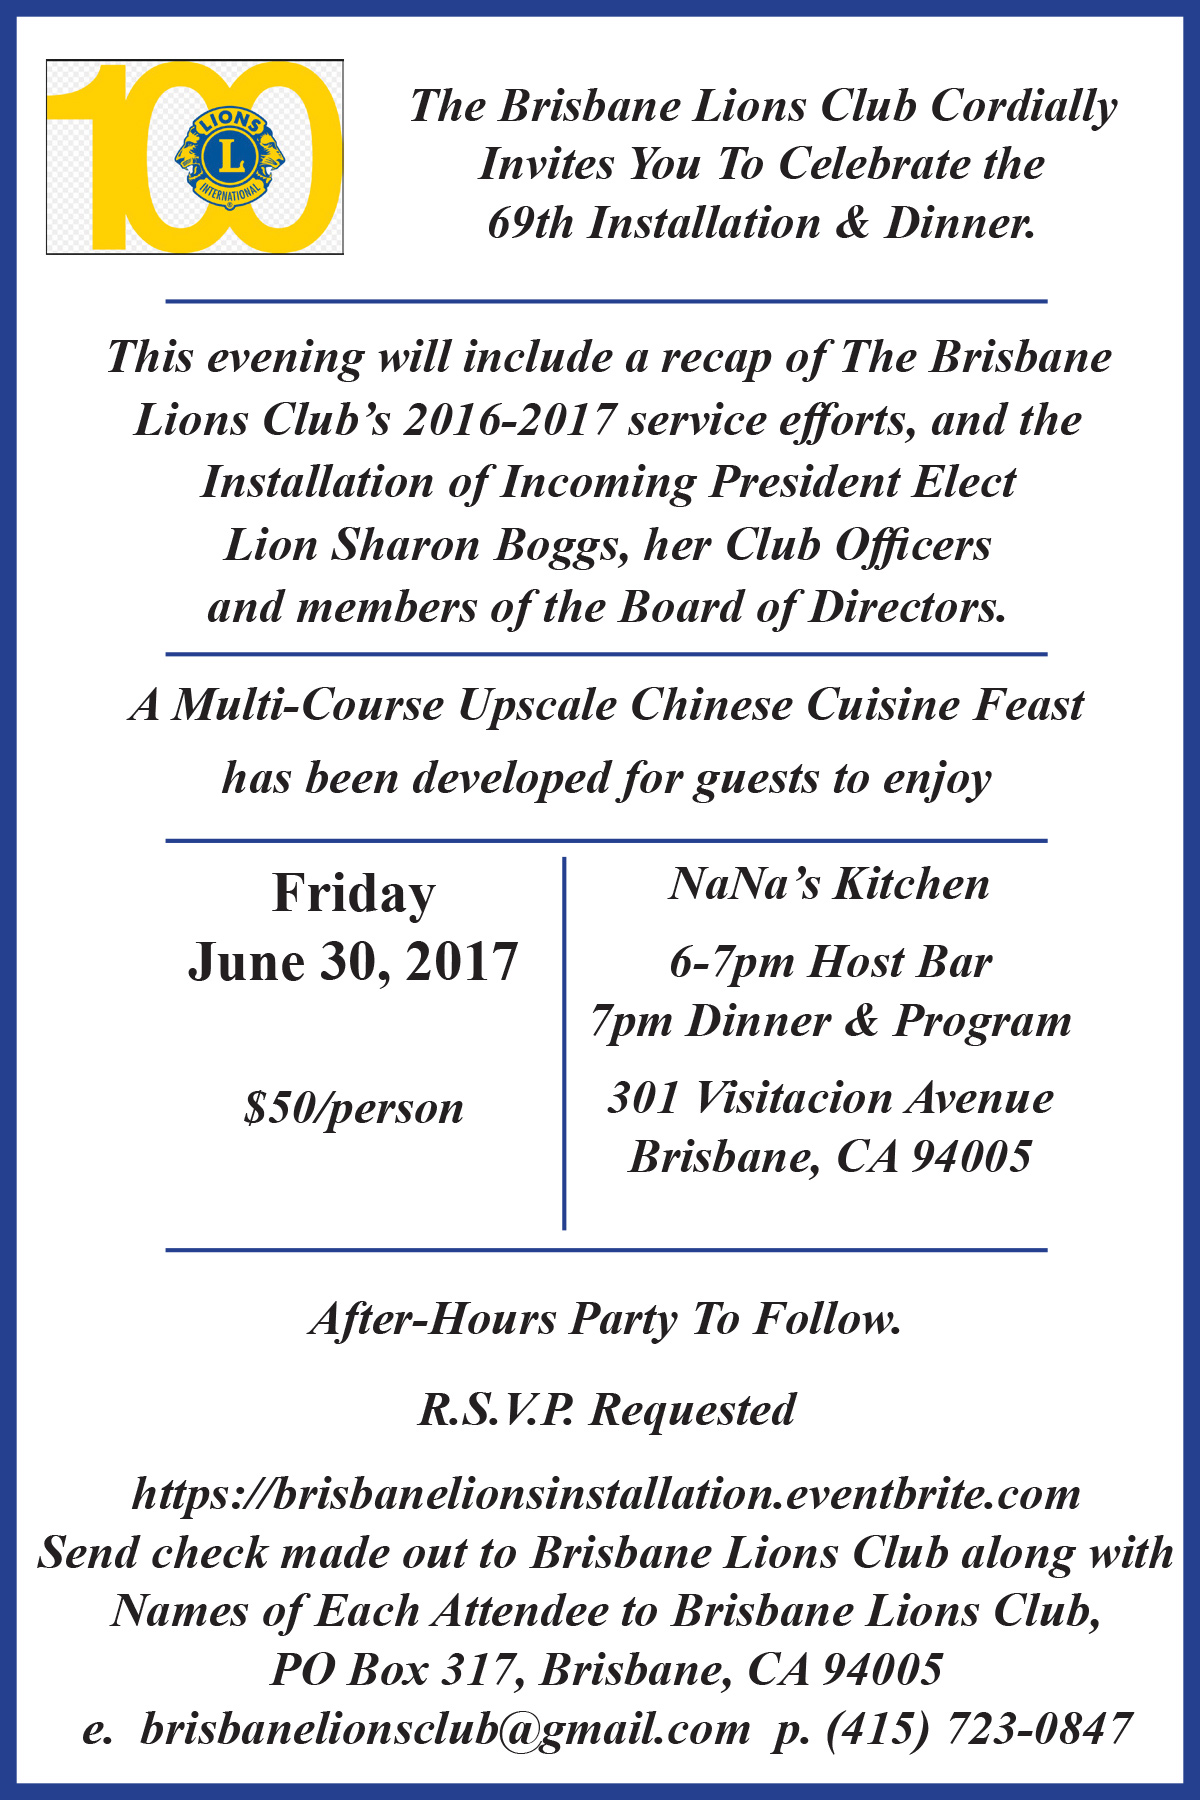 Brisbane Lions Club Cordially Invites You To Celebrate the  69th Installation & Dinner.